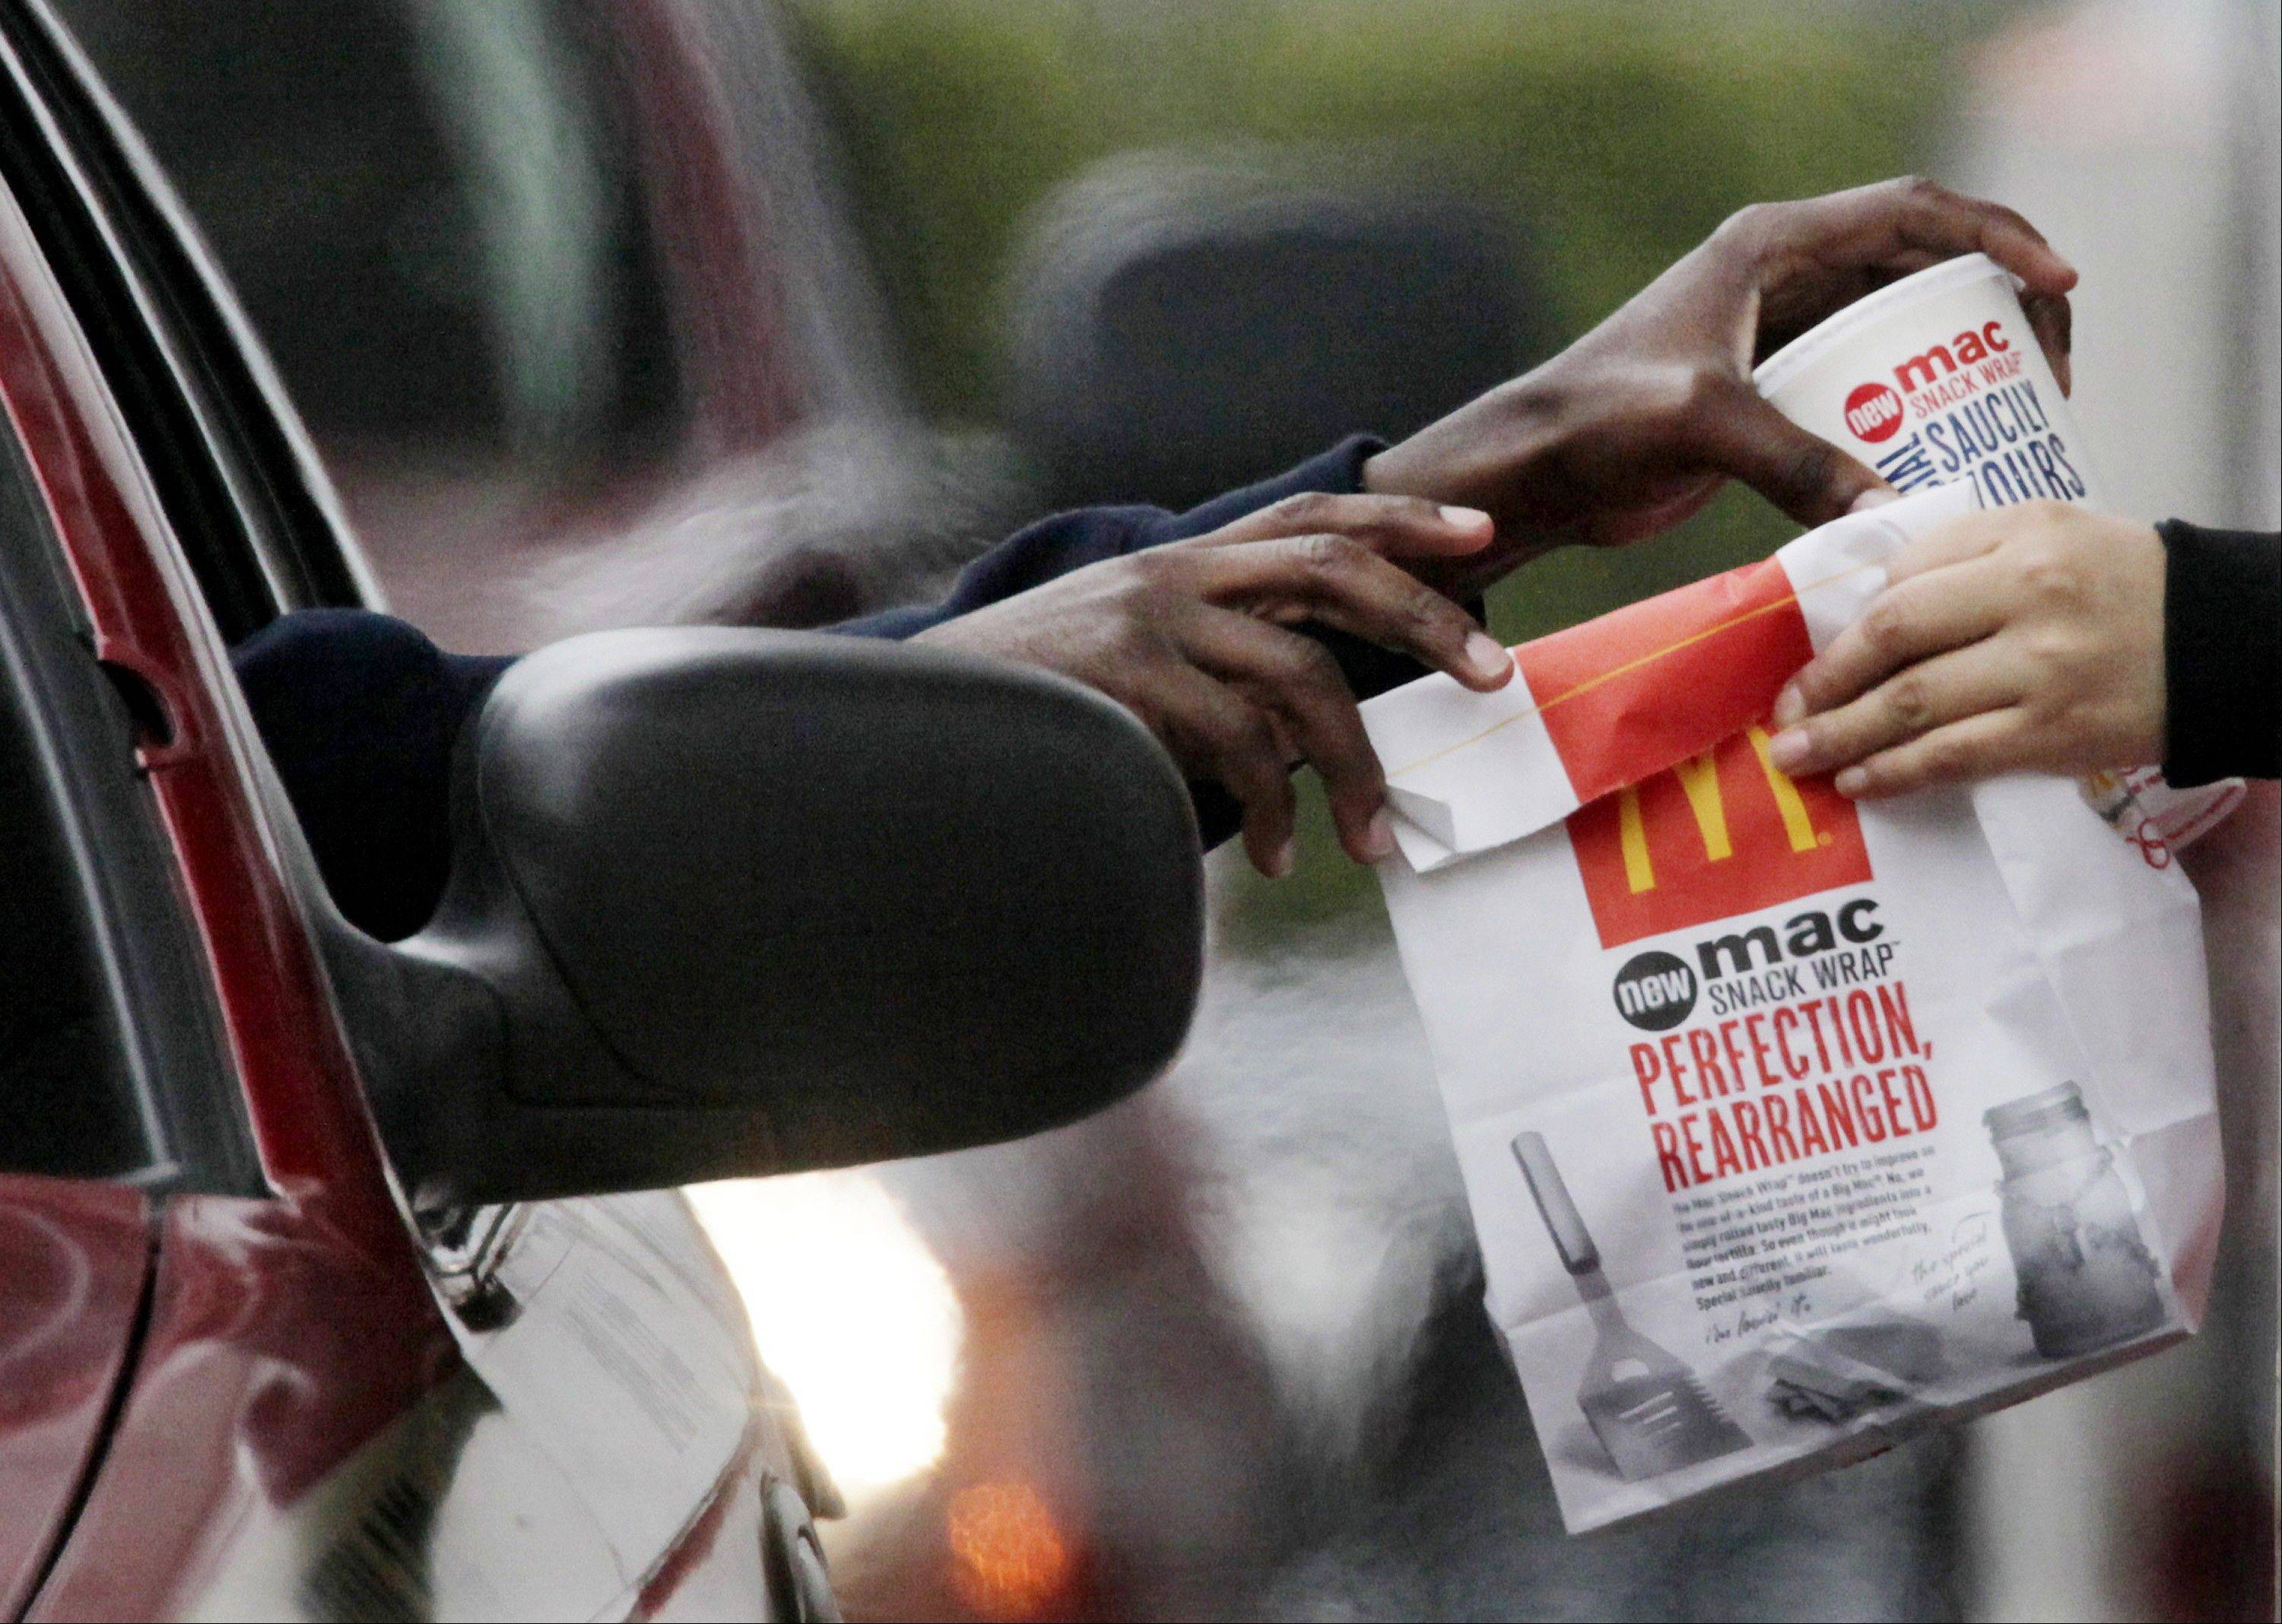 A customer grabs lunch at a McDonalds drive-through in Chicago.